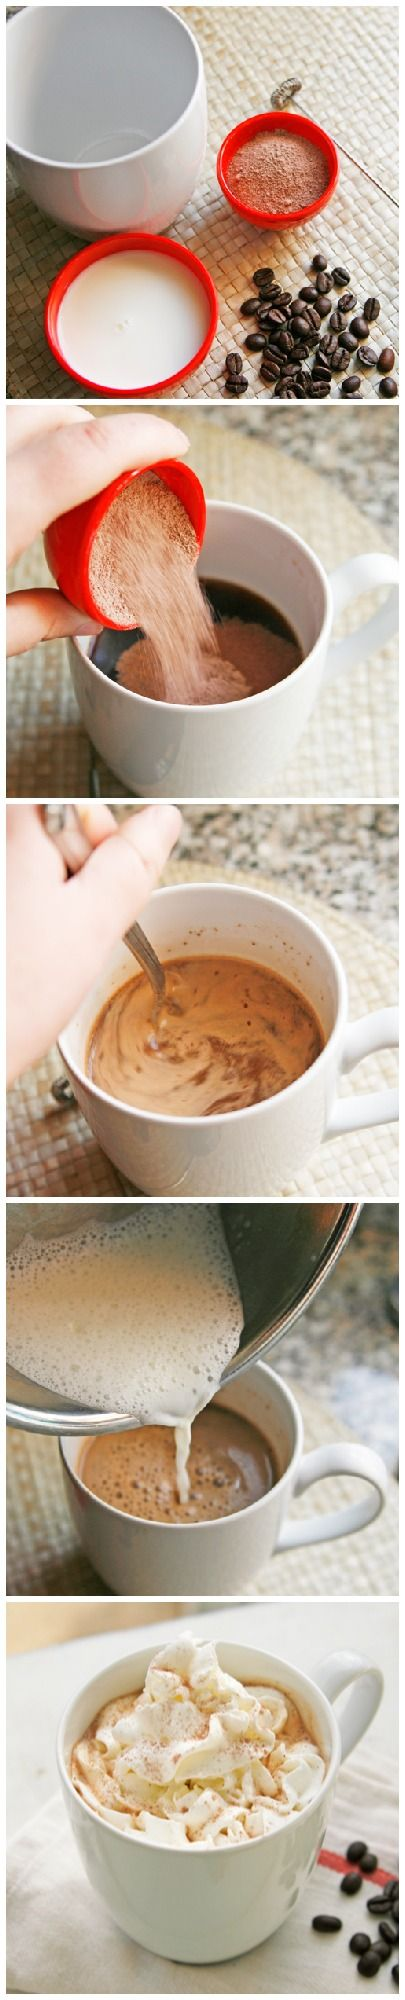 HOW TO: Make a Mocha Latte {in just 3 ingredients!}